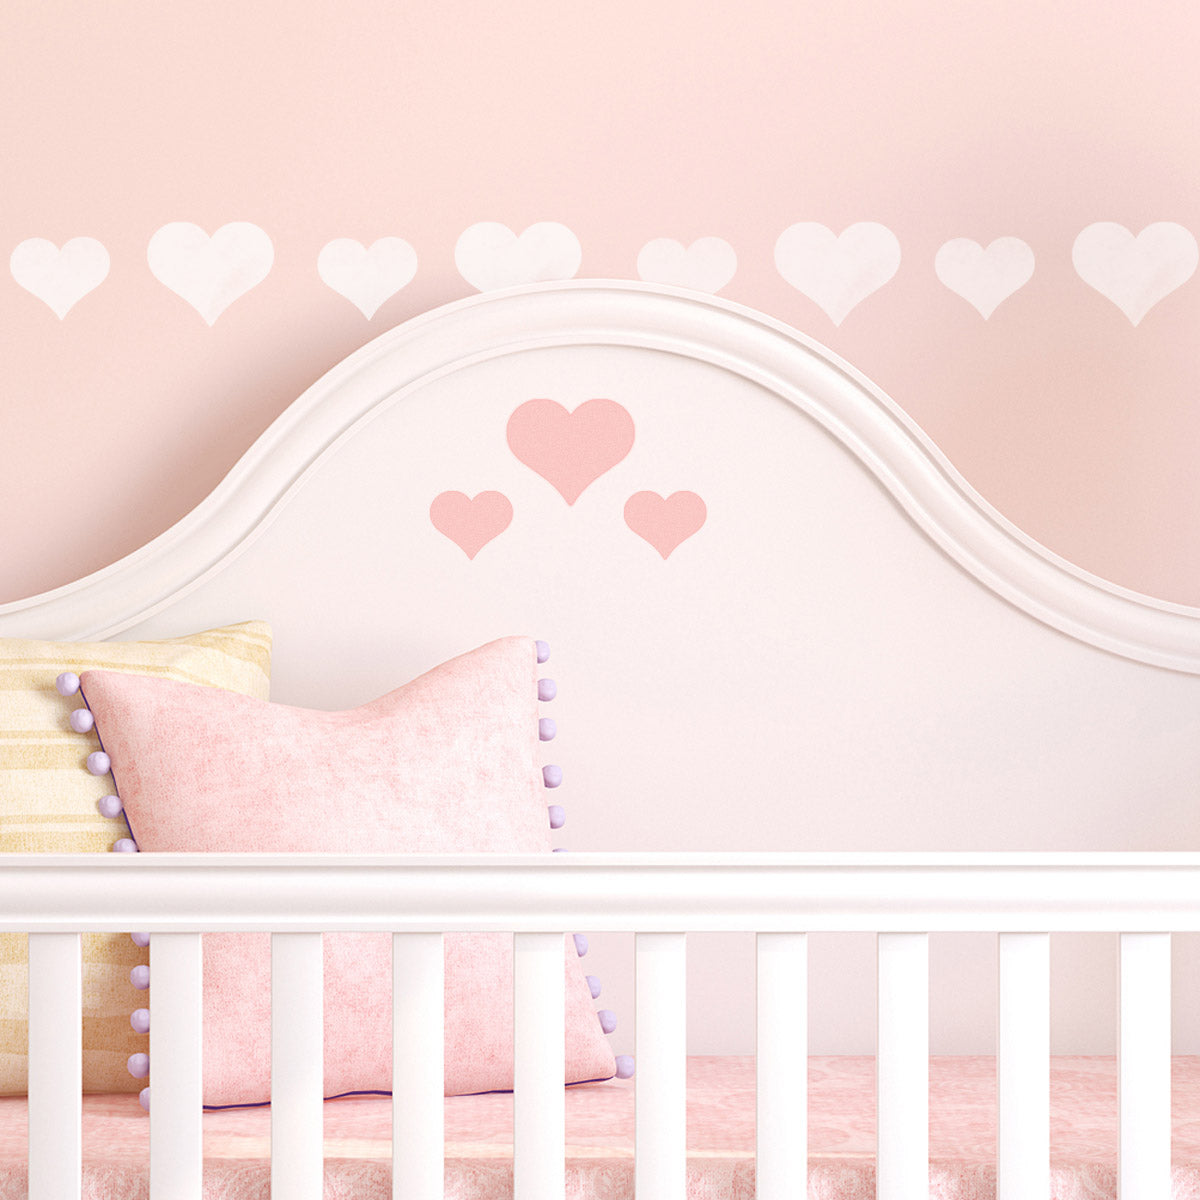 CraftStar Hearts Stencil Set in Nursery